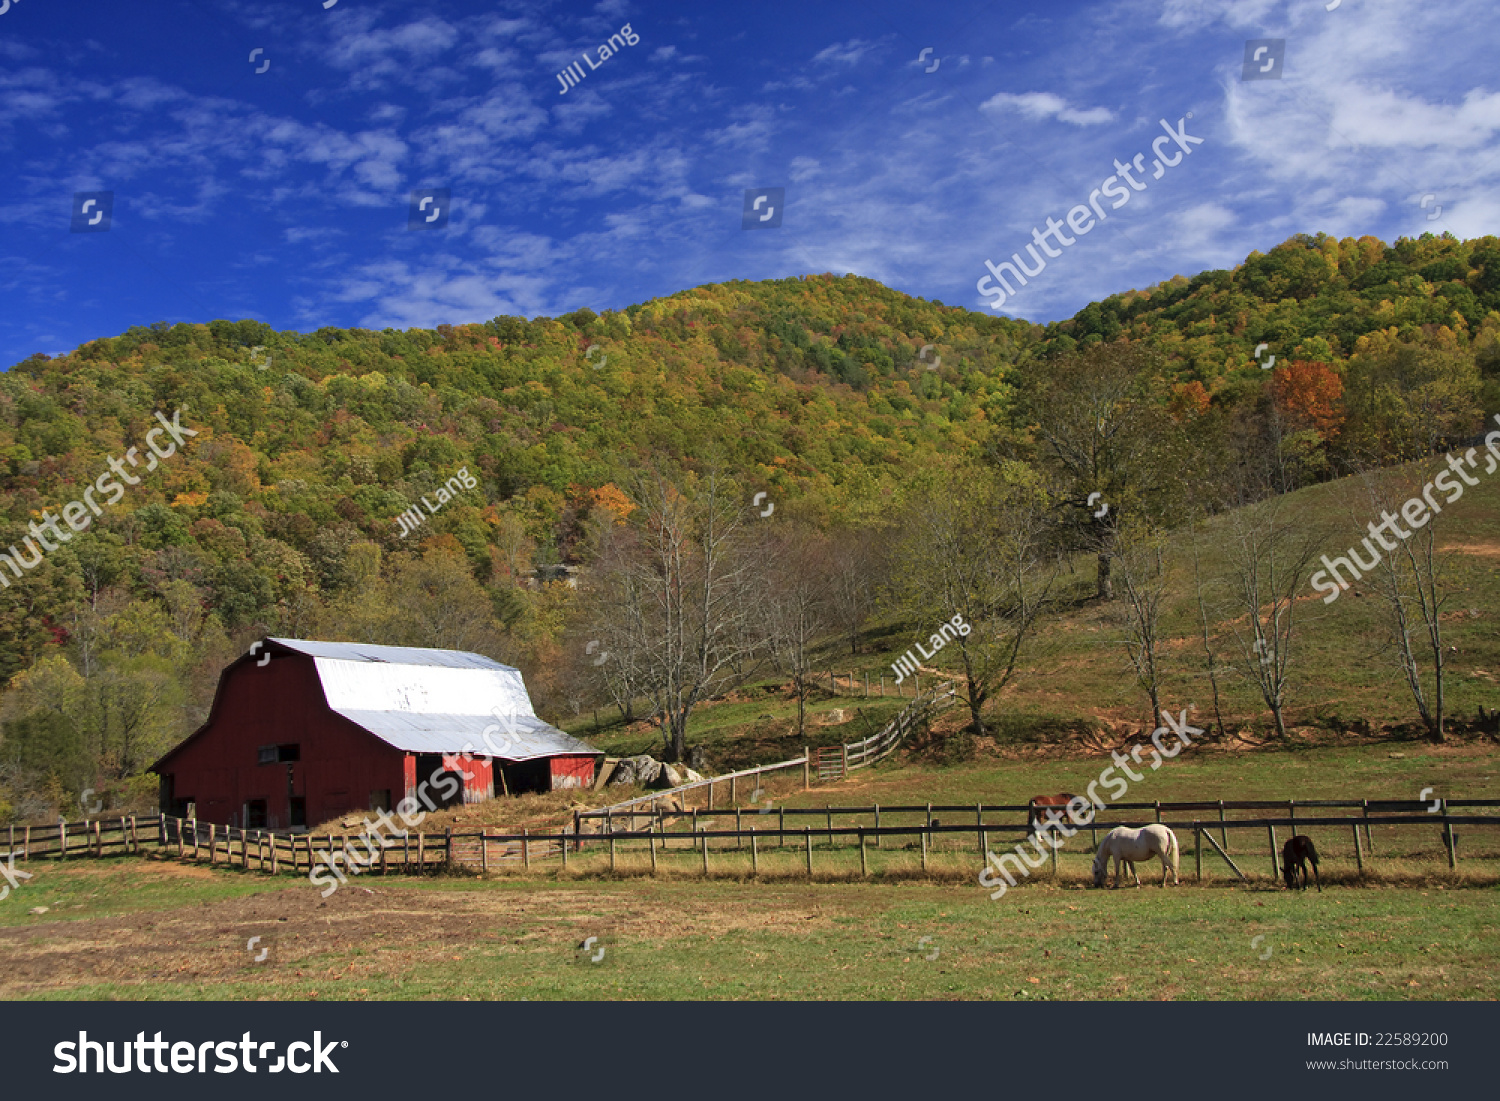 Old Barn Tin Roof Field Mountains Stock Photo 22589200